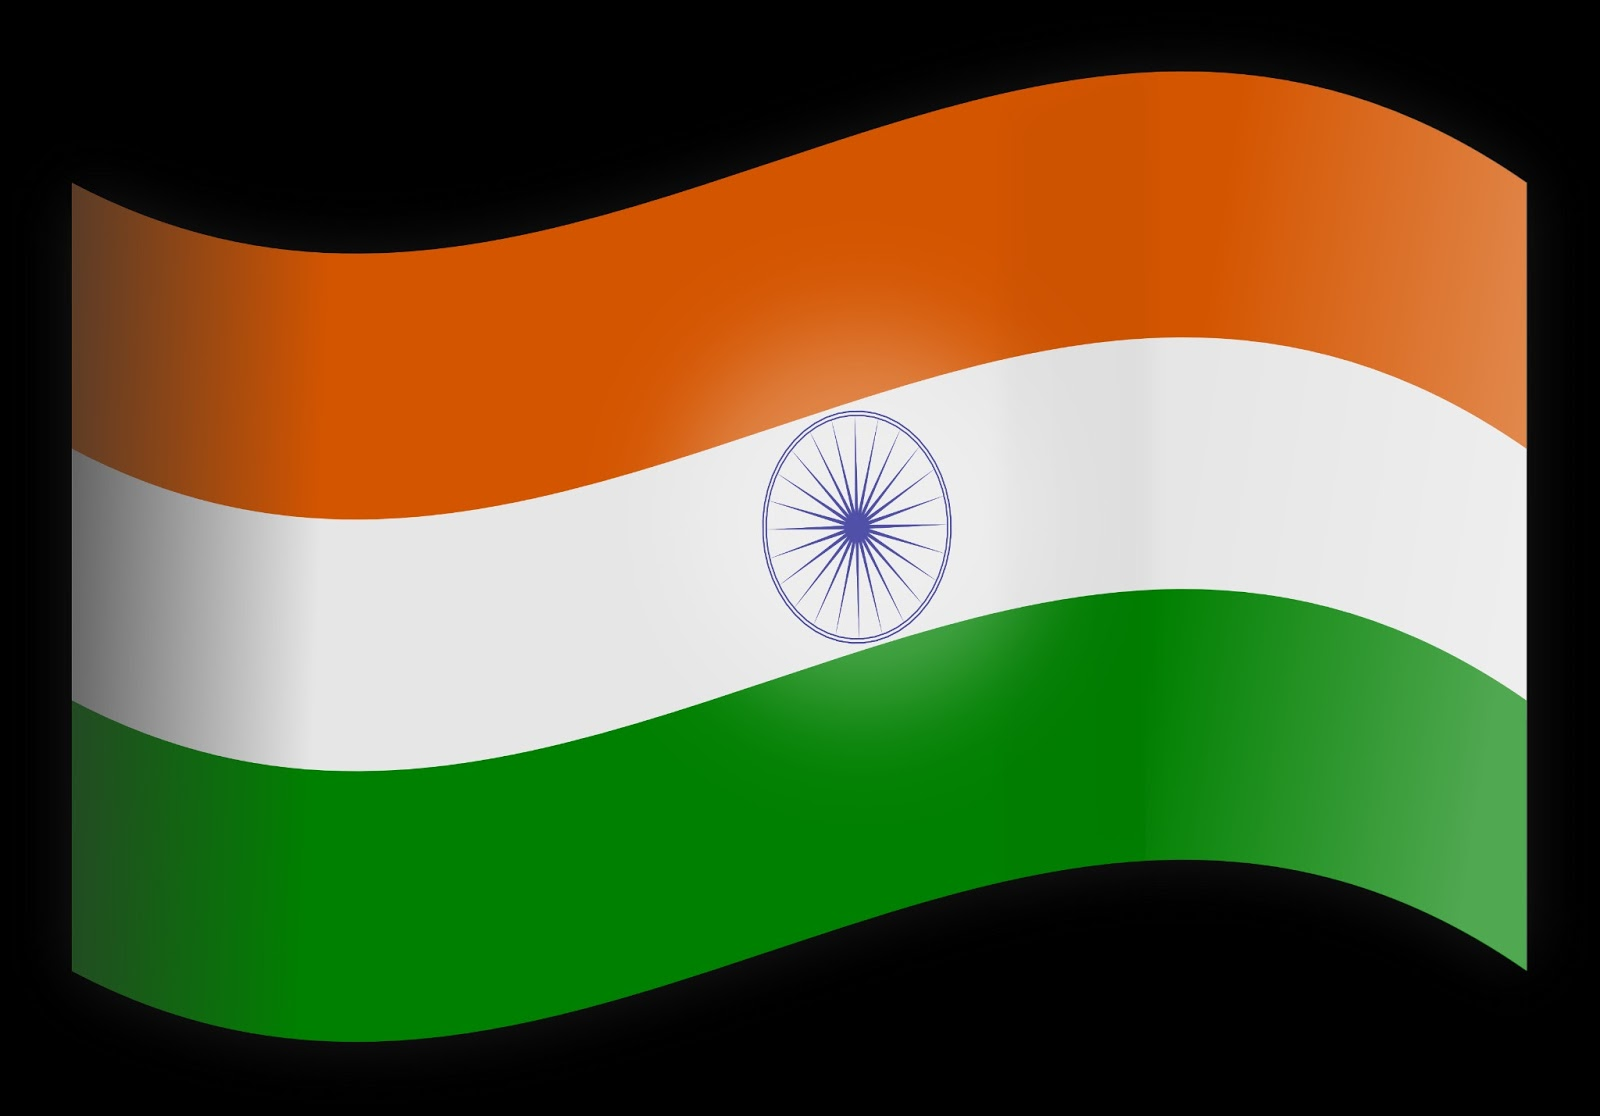 Good Night Greetings Quotes Wishes Hd Wallpapers Free Download Stylish Indian Flag For Happy Independence Day Wishes Hd